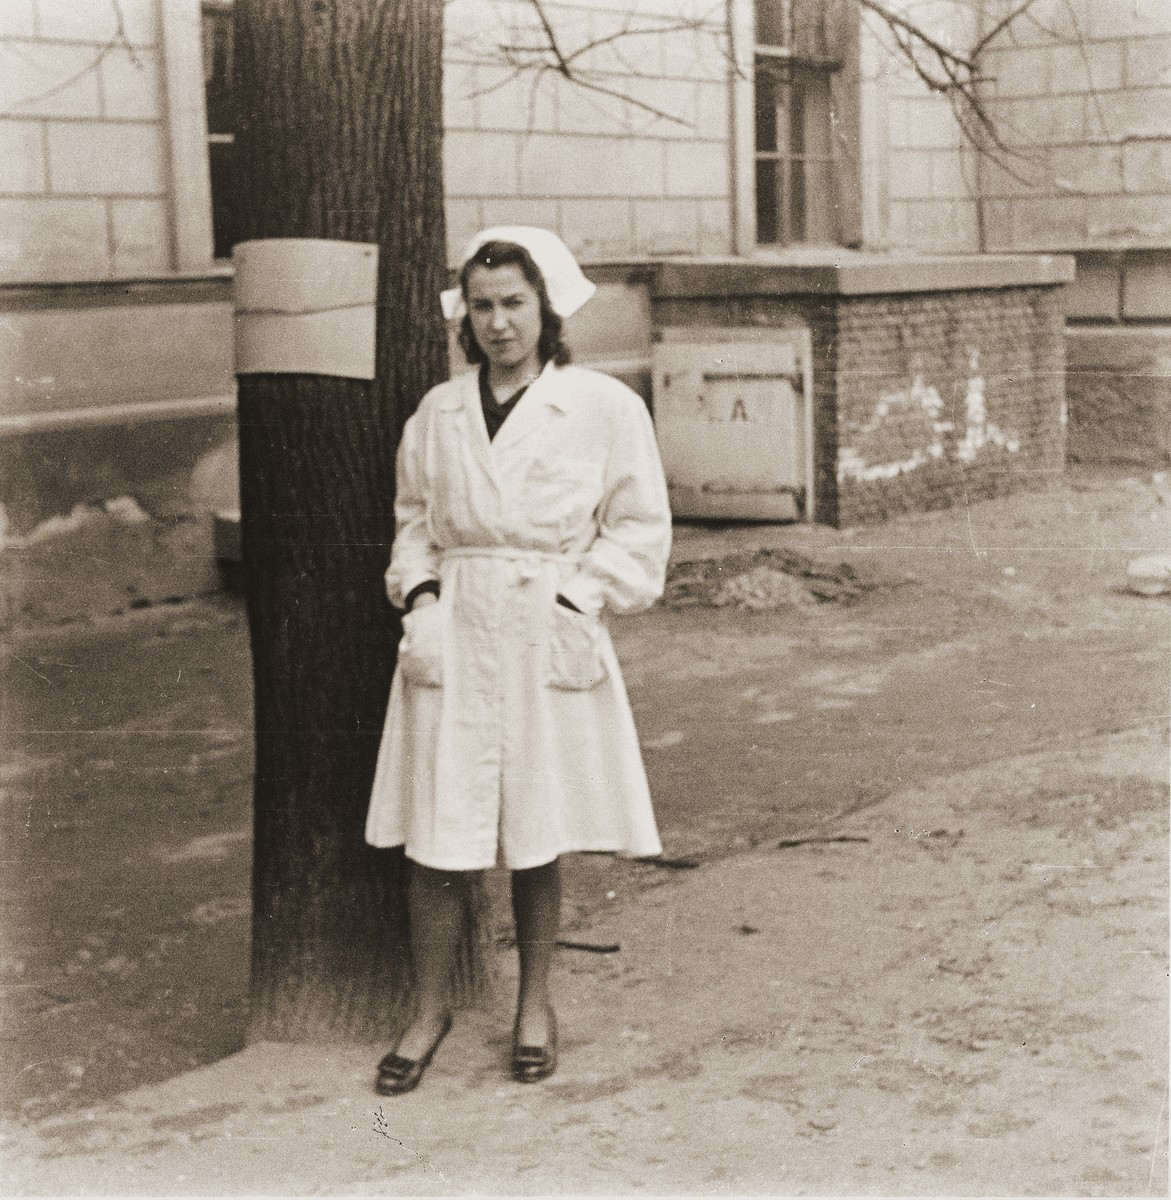 Celia Chaiken-Wells, a nurse and relief worker at the Rothschild Hospital poses in front of the building.  .   George Birman was born in 1922 in the German city of Konigsberg, and grew up near the Baltic port of Klaipeda in Lithuania.  His father, Abel Birman, gave him a Voigtlander camera as a present for his tenth birthday with which he took pictures of pre-war, wartime and postwar Europe.  In 1941 Birman was imprisoned in the Kovno ghetto and then was sent to a number of slave labor camps.  He managed though to keep his photographs with him.  On the night of July 9, 1944, before escaping from the Kedainiai labor camp outside of Kovno, Birman handed over his passport, birth certificate and approximately 150 photographs and negatives to his father.  As the camp cook, his father wrapped the documents in waxed paper and buried them in a canister under the kitchen.  Birman cut the barbwire fence surrounding the camp with pliers.  Along with his father and a companion, he crawled through a drainage ditch and hid in a tall rye field before running away to the forests.  One month later, after the German retreat, Birman dug up his photographs -- which he found undamaged -- and photographed the places where he had worked and escaped.  In postwar Vienna, Birman studied engineering and worked for Bricha, the illegal organization that smuggled survivors to Palestine.  He guided refugees to the Rothschild Hospital and from there on routes to Palestine.  He lived off and on at the Rothschild Hospital for four years registering refugees while his father helped manage the hospital's supplies.